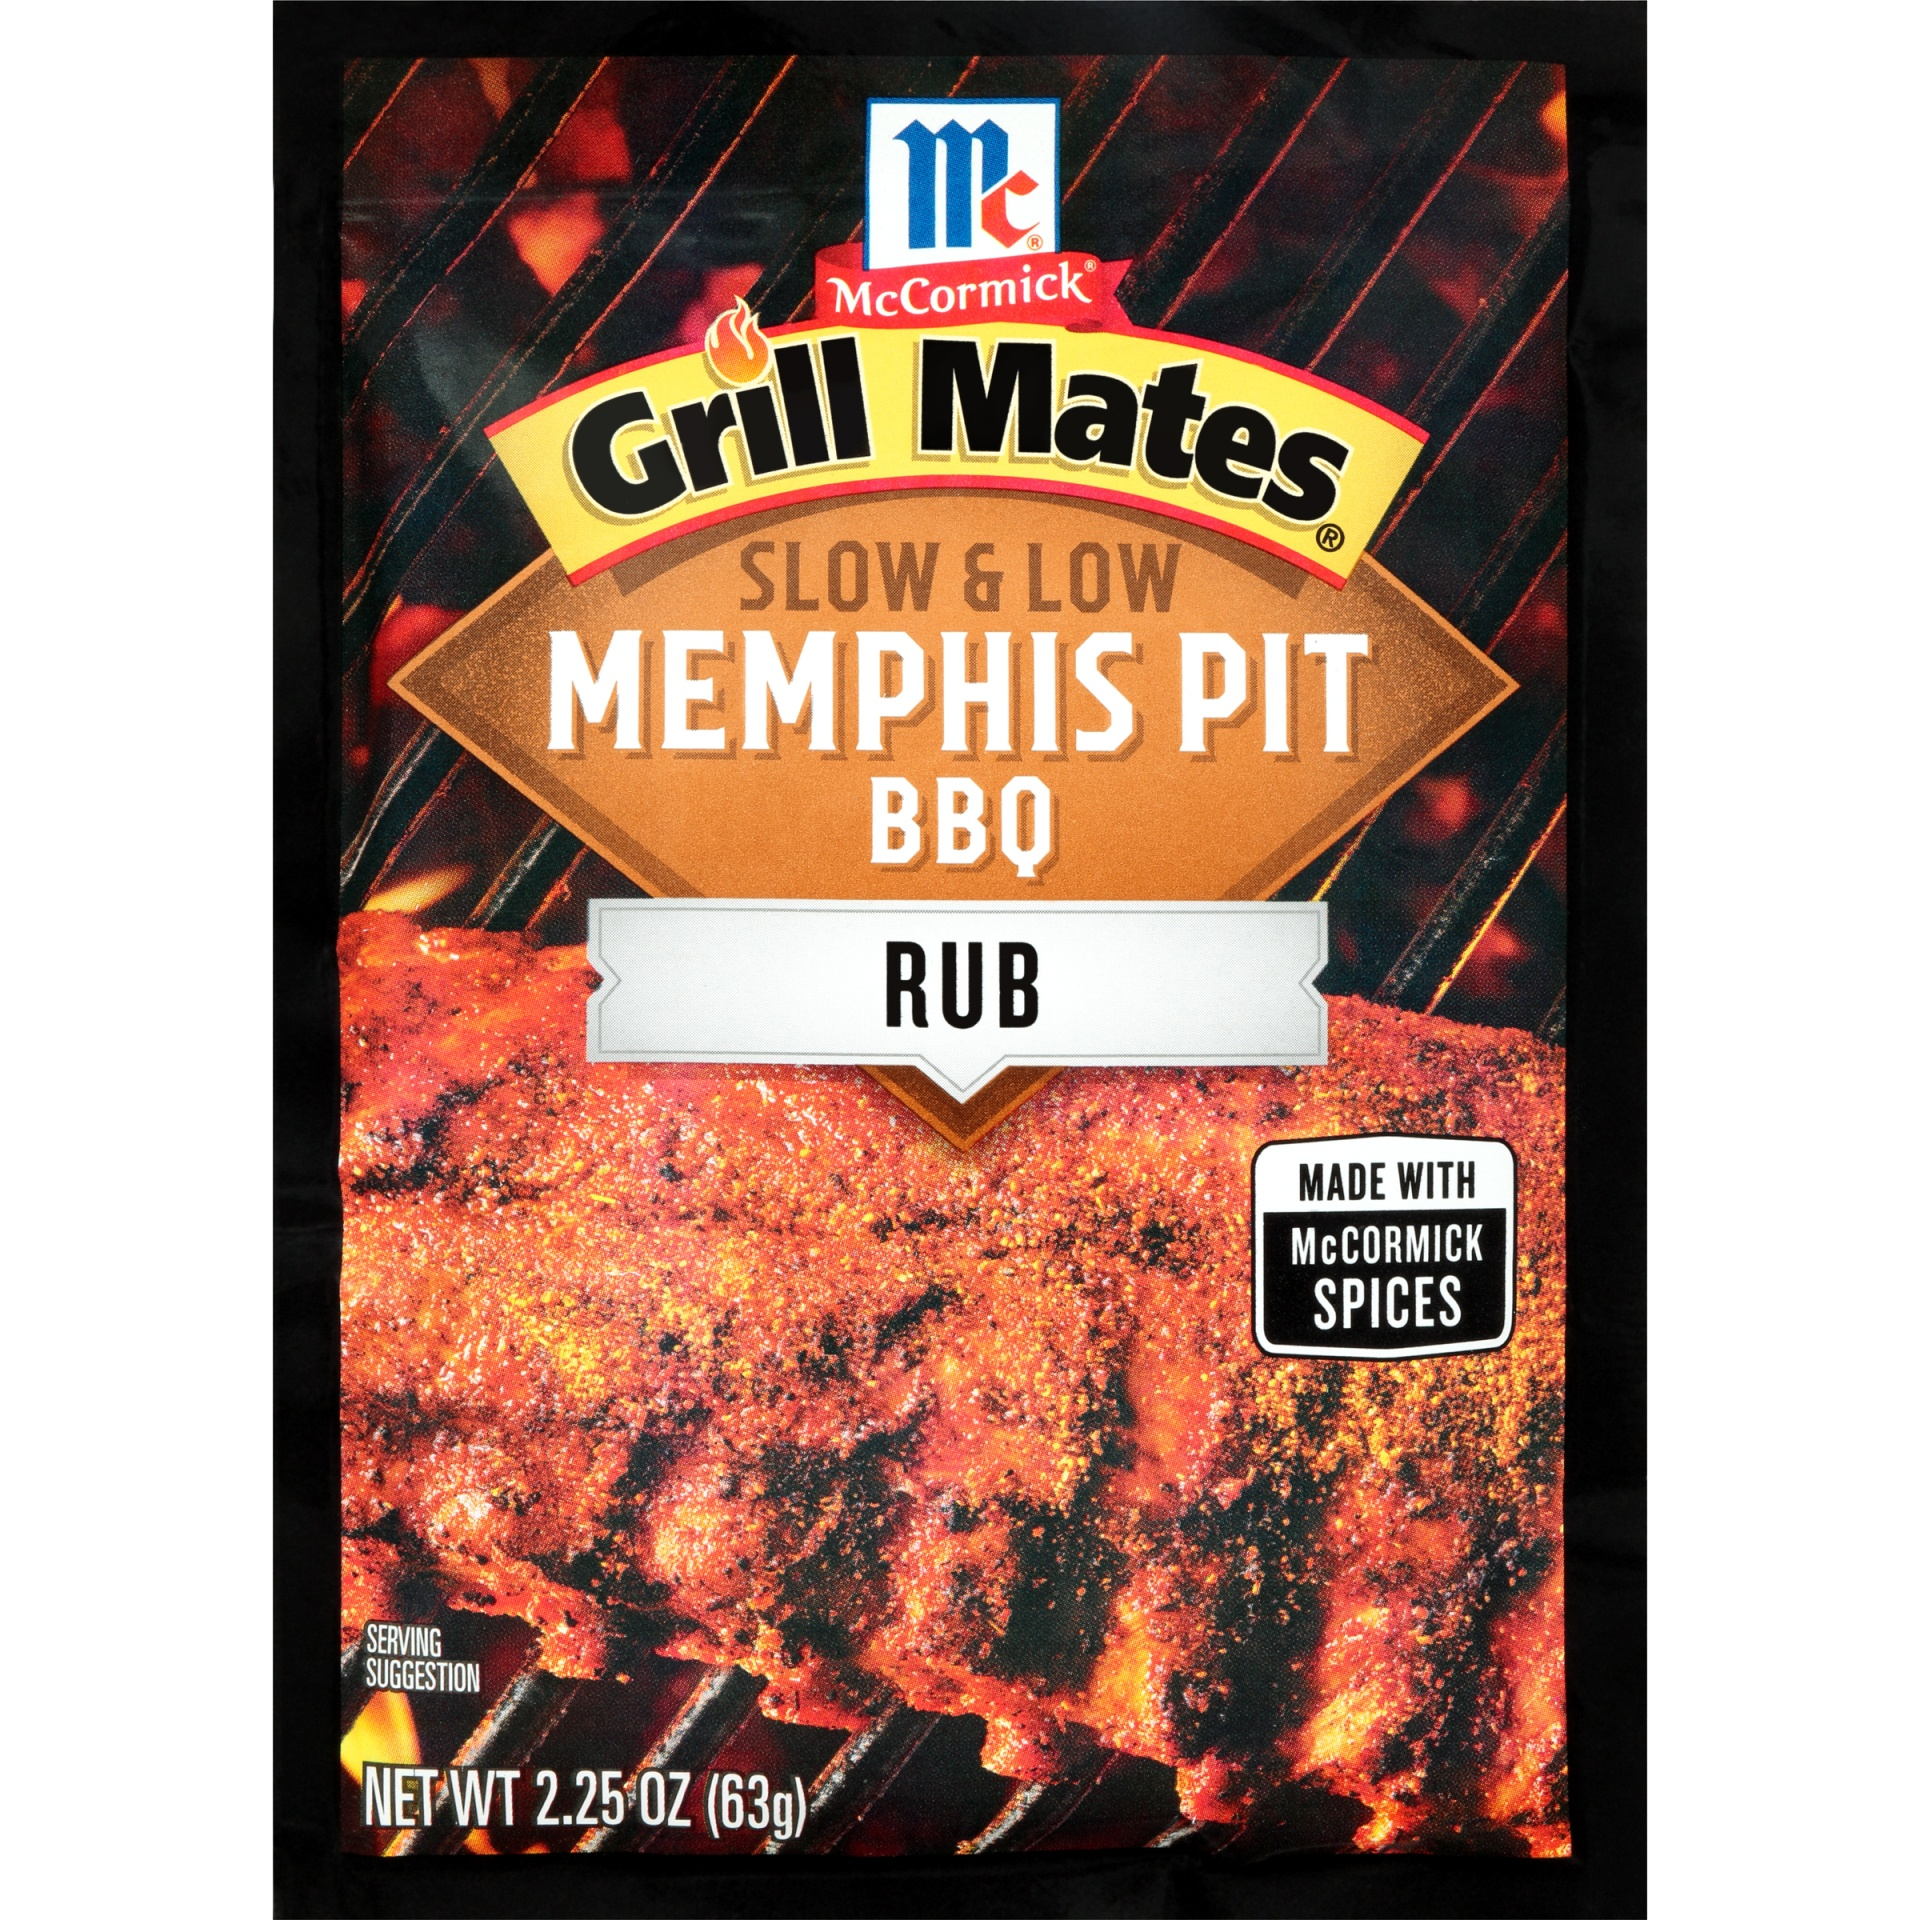 slide 1 of 1, McCormick Grill Mates Slow & Low Memphis Pit BBQ Rub,